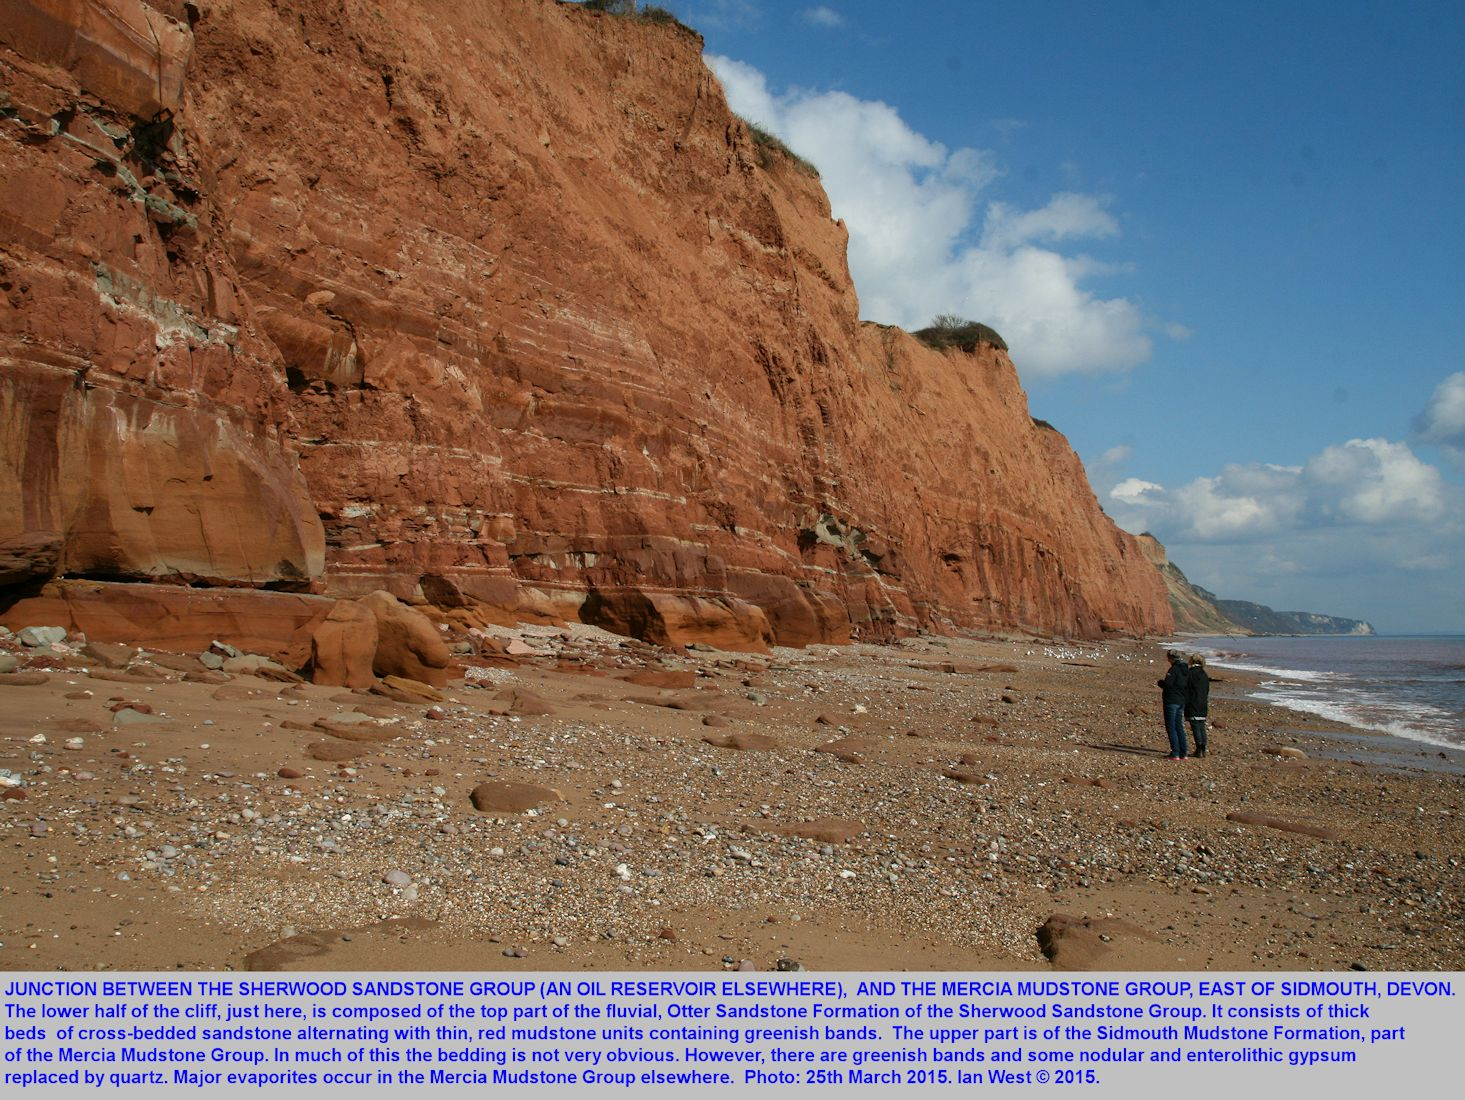 The junction between the Otter Sandstone Formation of the Sherwood Sandstone Group and the Sidmouth Mudstone of the Mercia Mudstone Group, east of Sidmouth, Devon